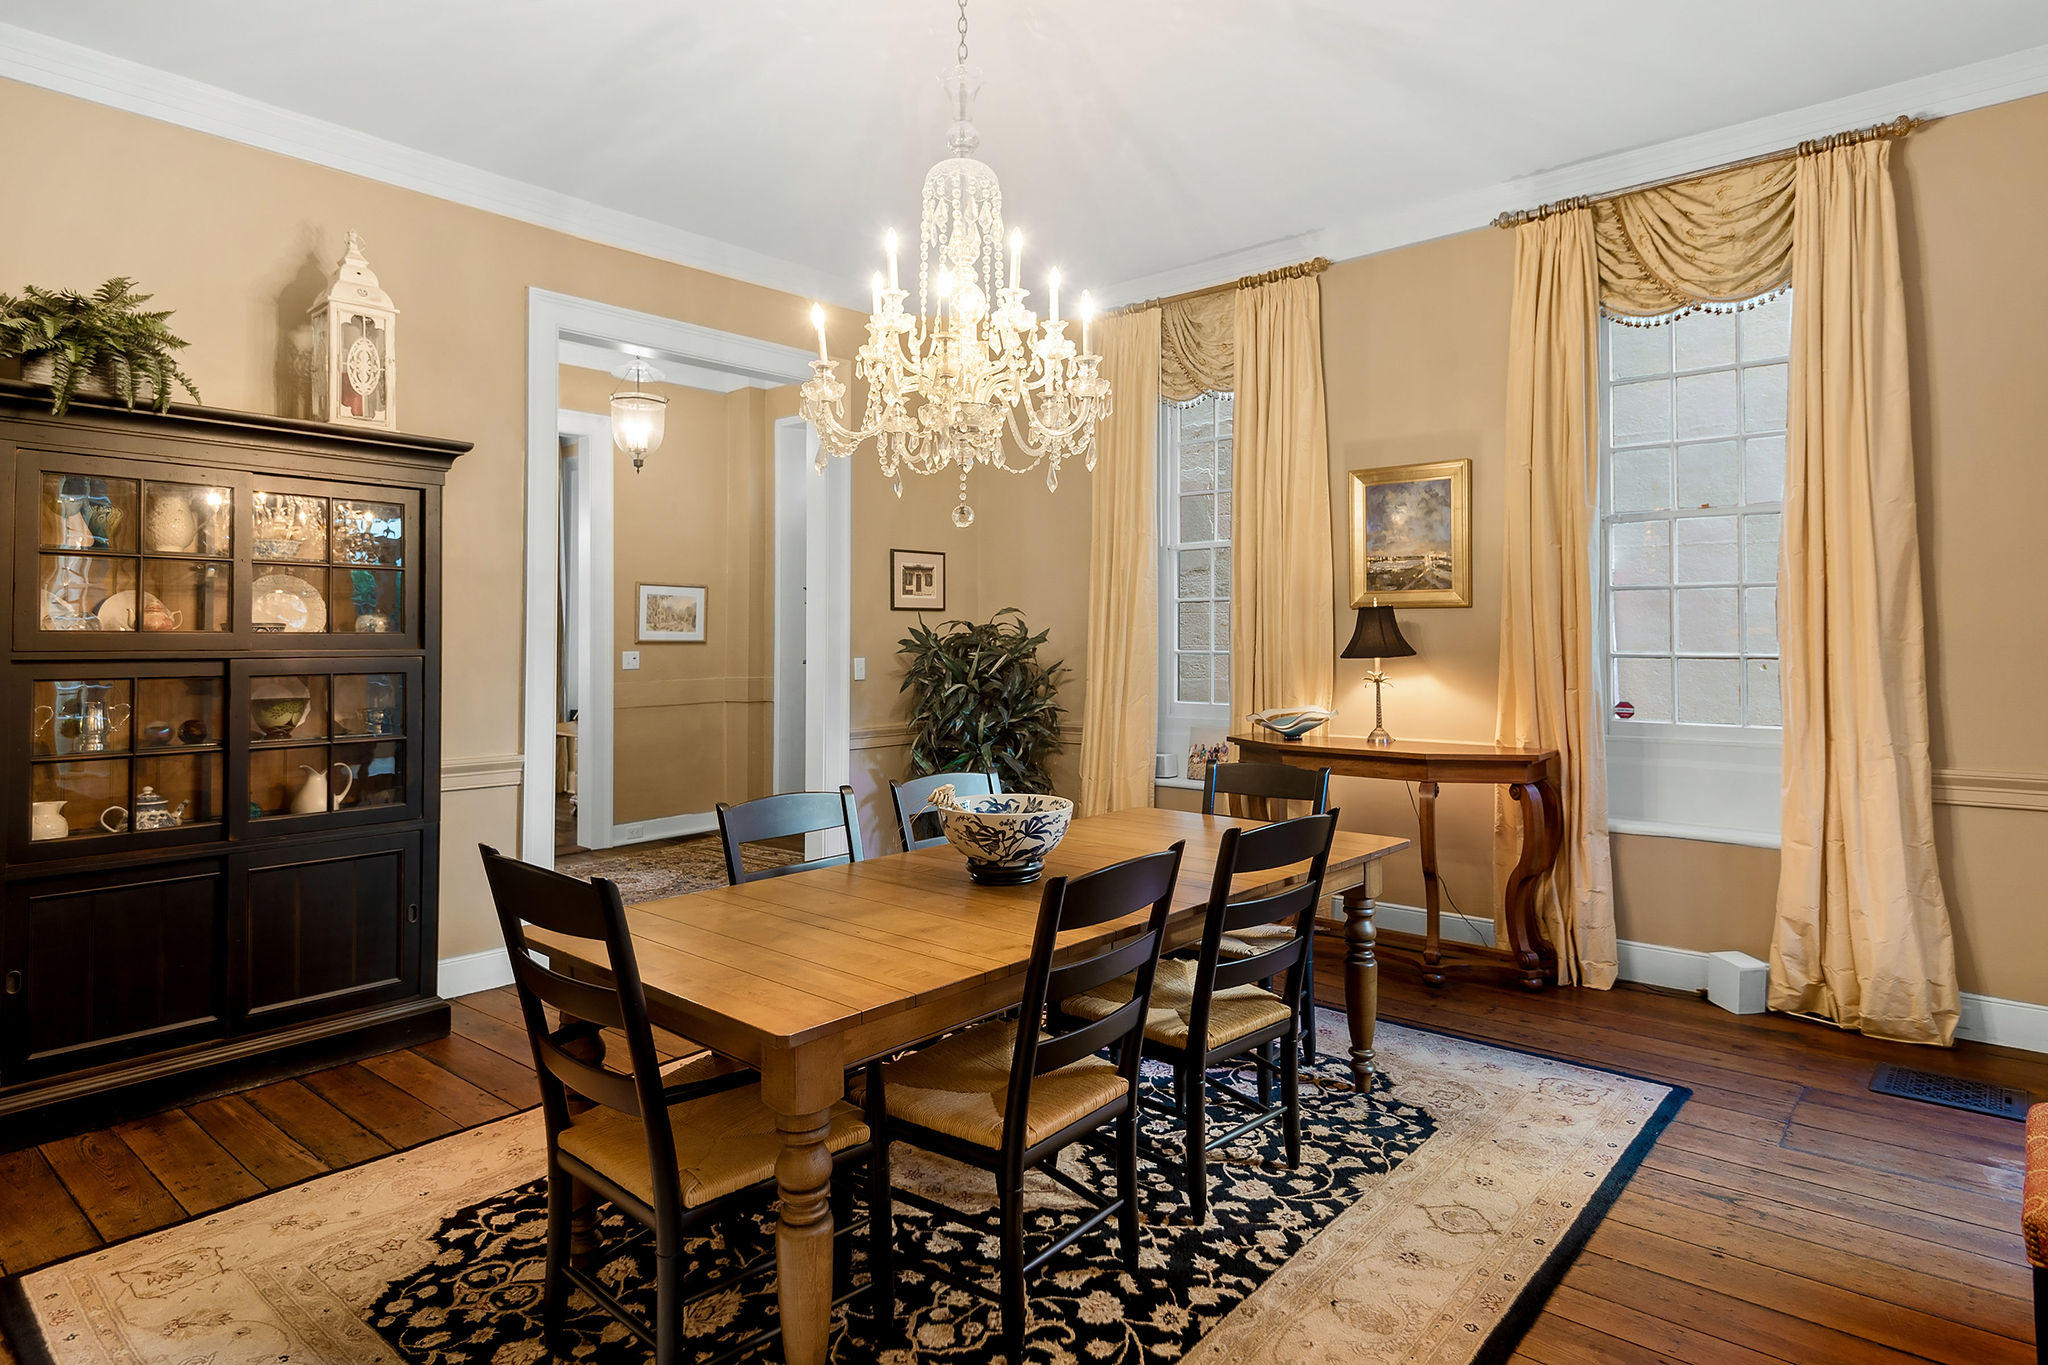 South of Broad Homes For Sale - 54 Tradd, Charleston, SC - 13